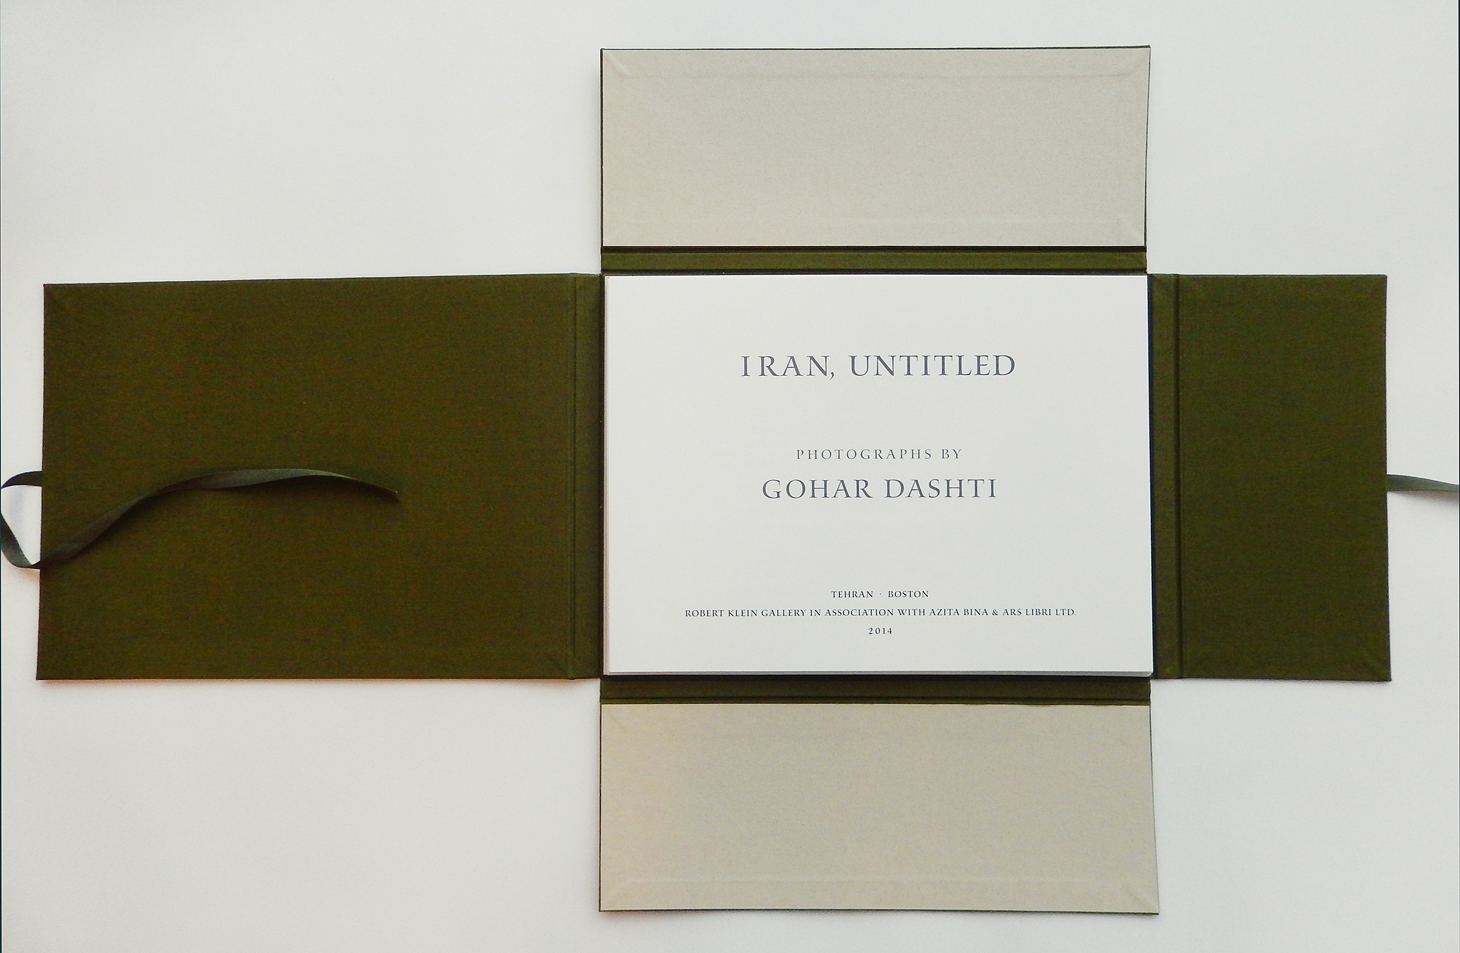 Gohar Dashti  Iran, Untitled    Design and inkjet printing of text pages by Stinehour Editions.